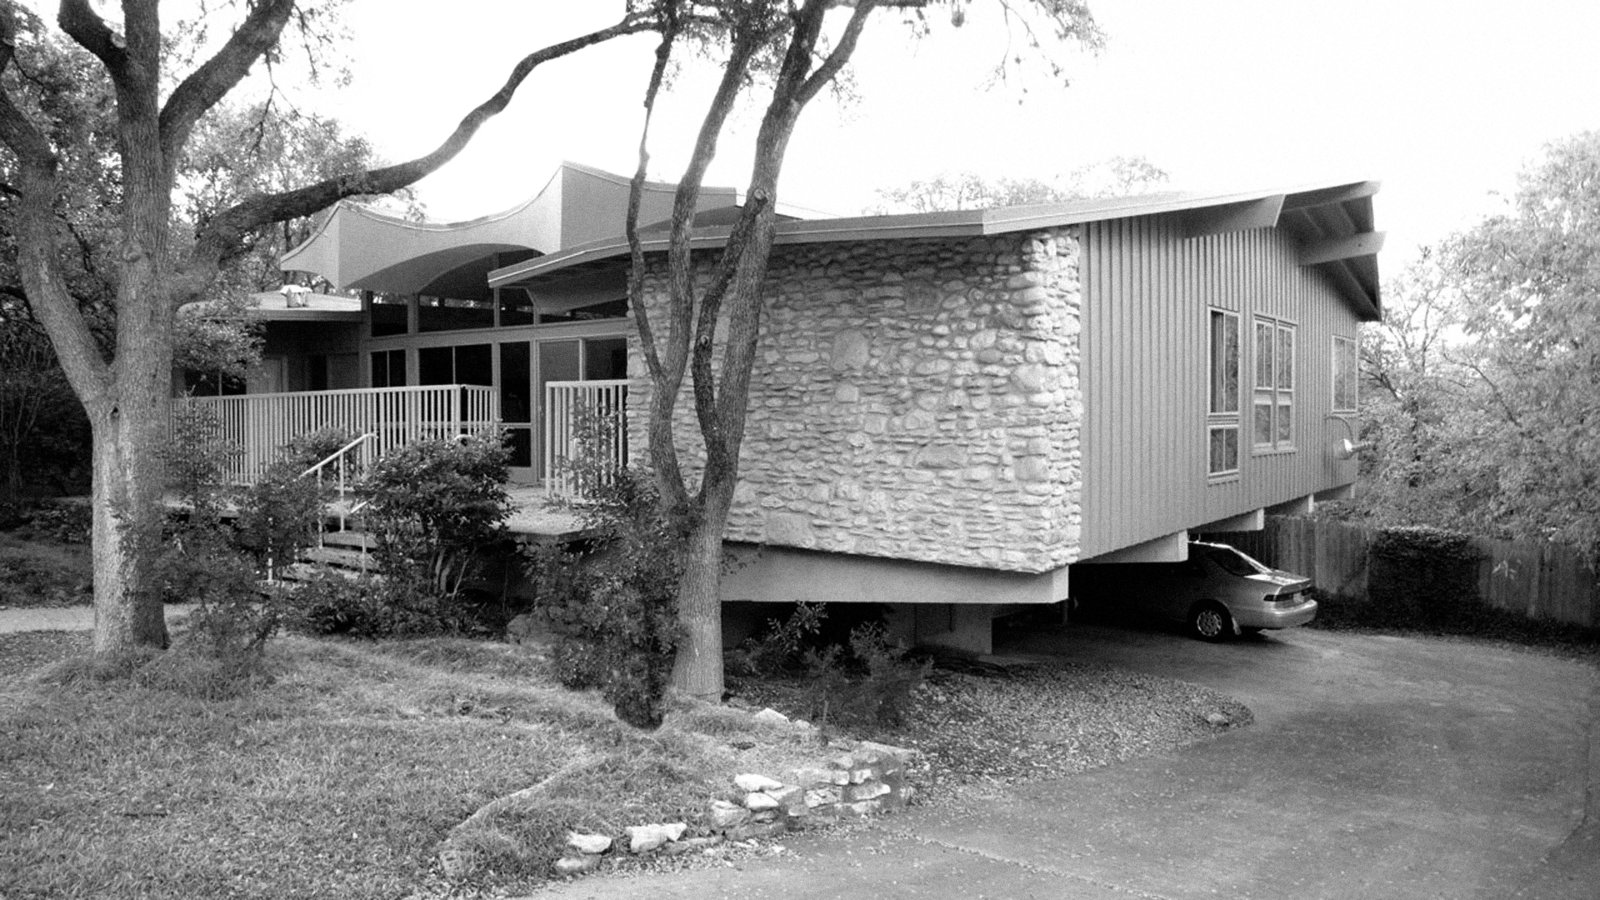 Architect A.D. Stenger designed and developed scores of houses in Austin, Texas, including this one, whose Jetsons-esque facade is rumored to reference the aeronautics classes he took in college.  Mid Century Modern Austin by Creede Fitch from A Renovated Midcentury Gem in Austin